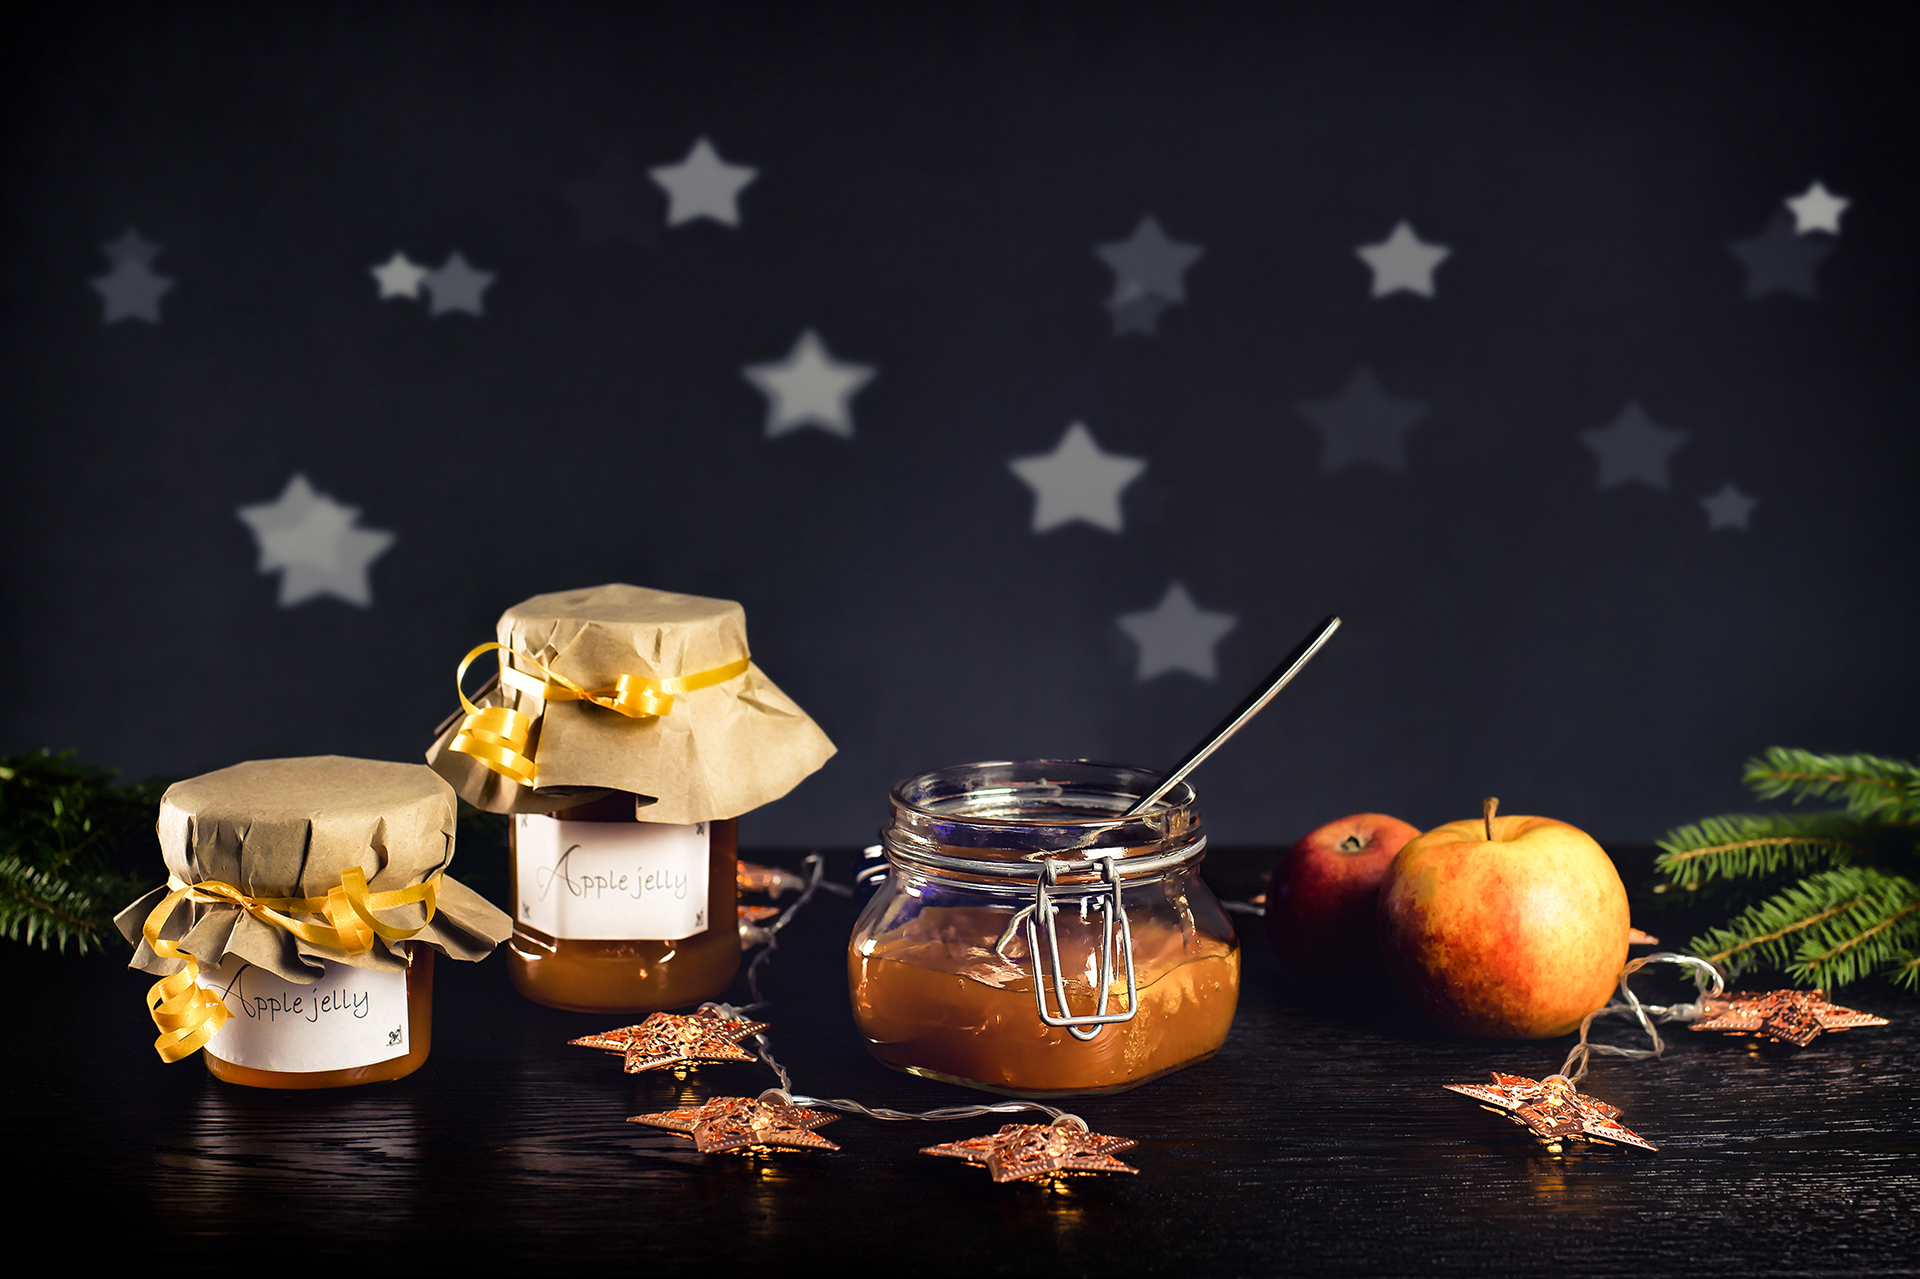 Apple jelly for Christmas